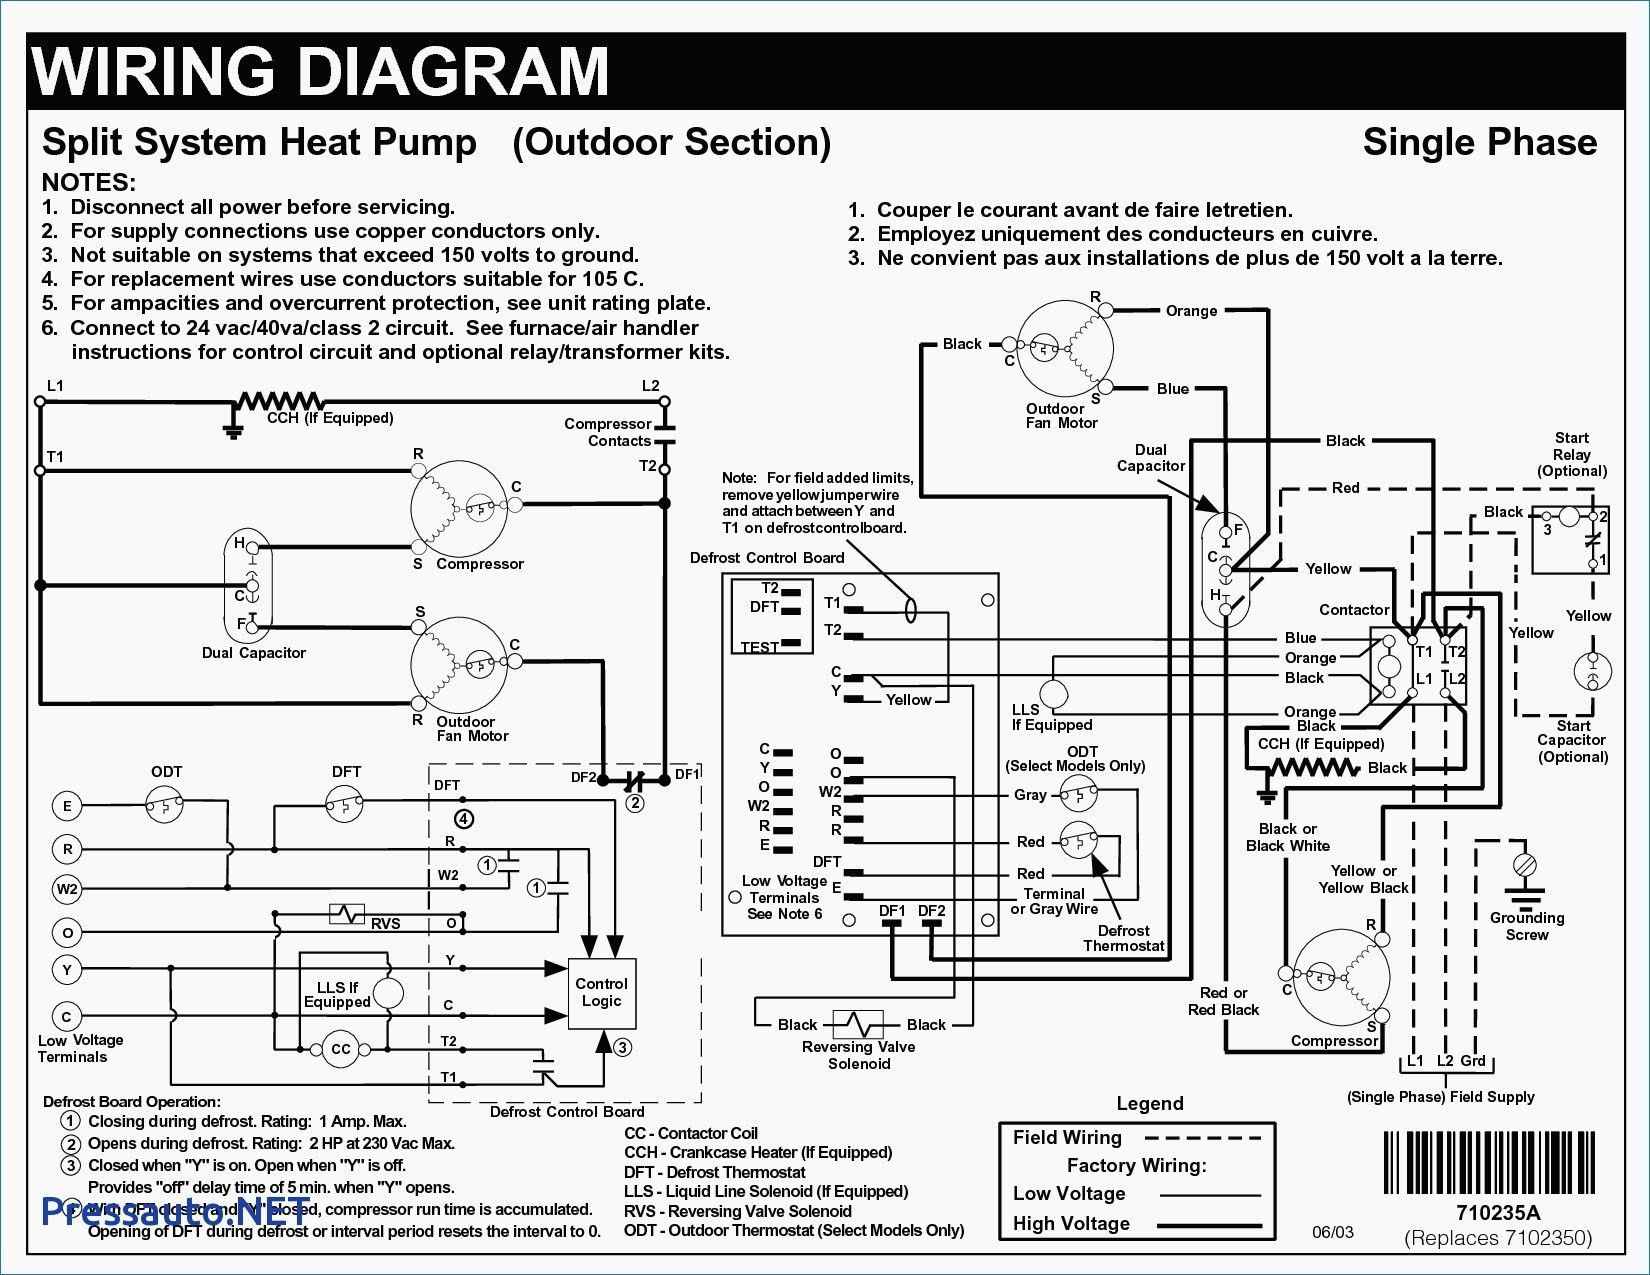 Unique Airconditioning Split Unit Wiring Diagram